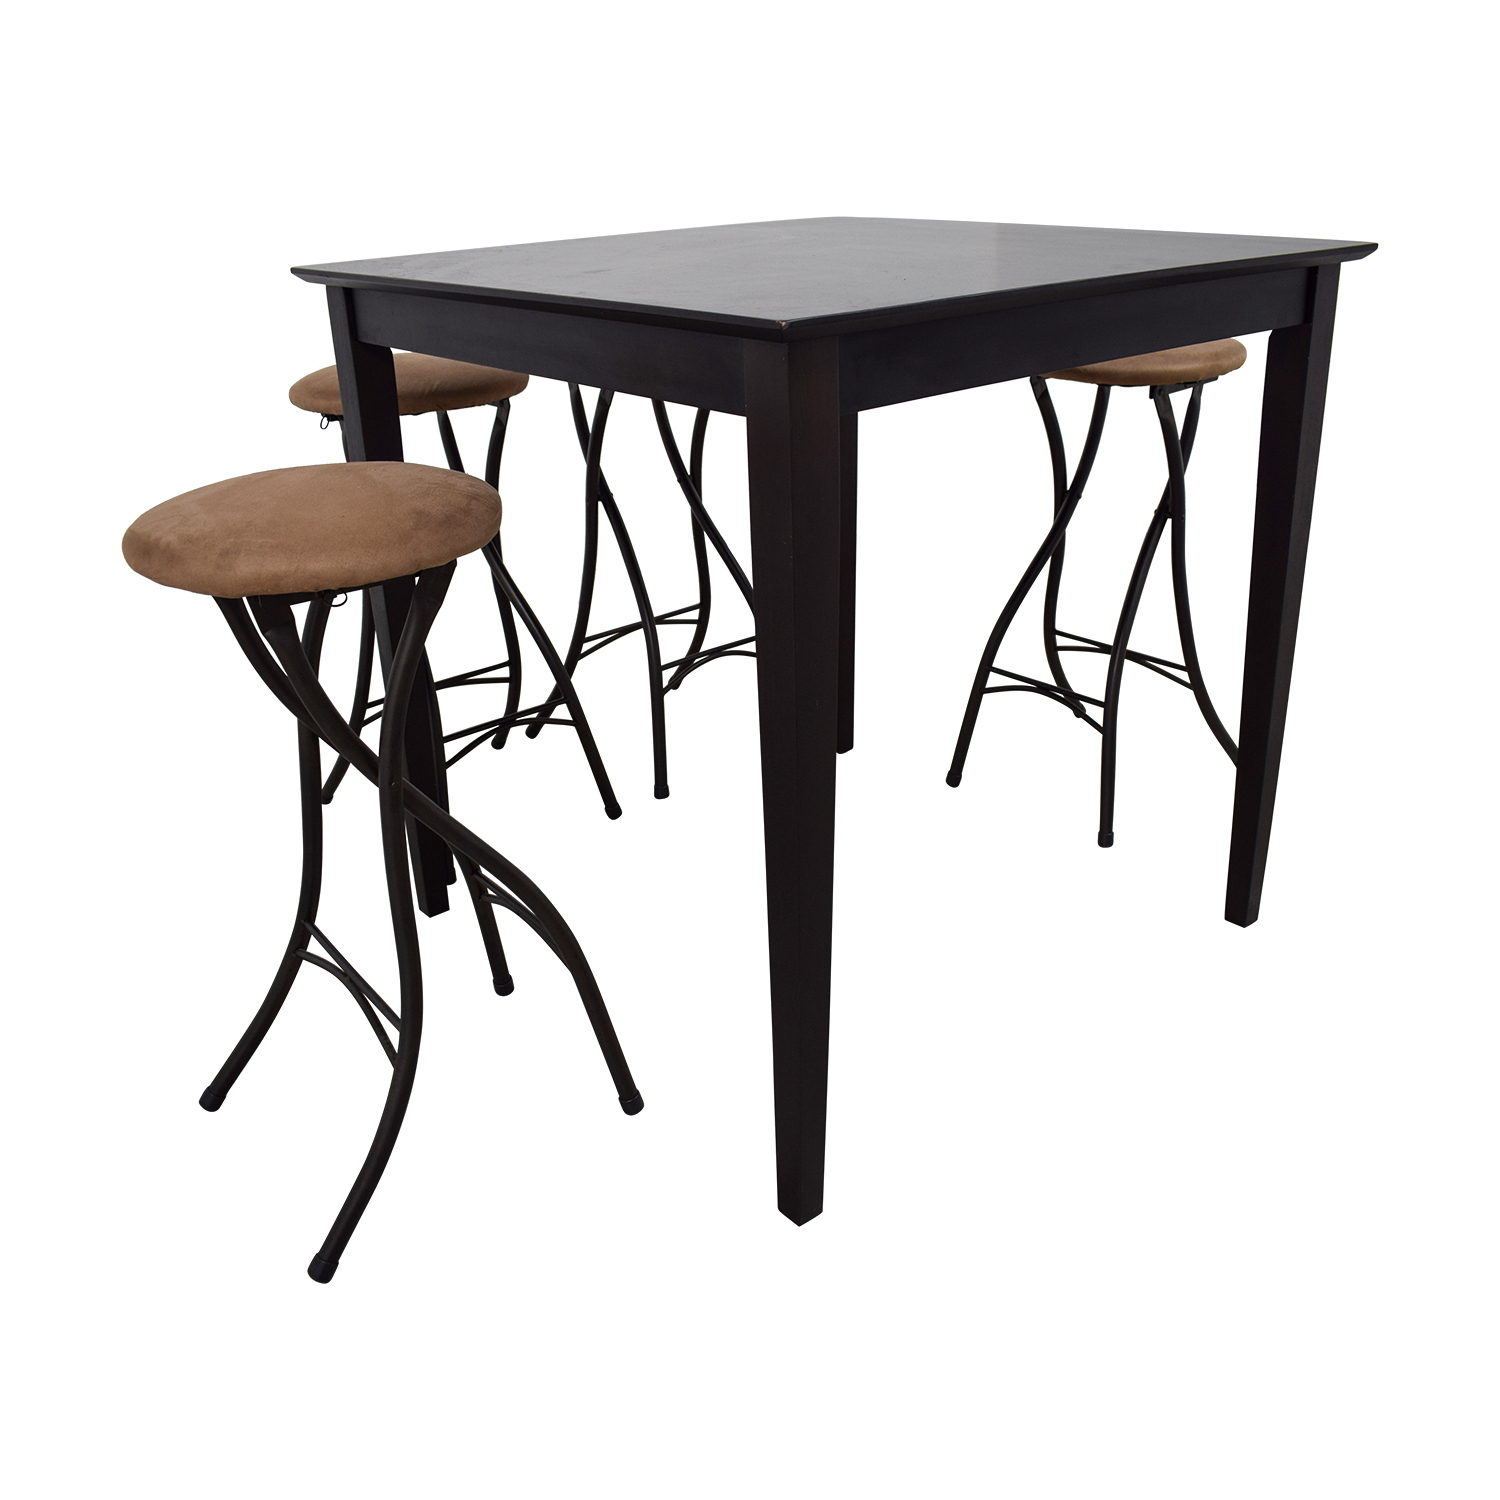 Cheyenne Industries Cheyenne Industries Counter Top Dining Set with Stools on sale